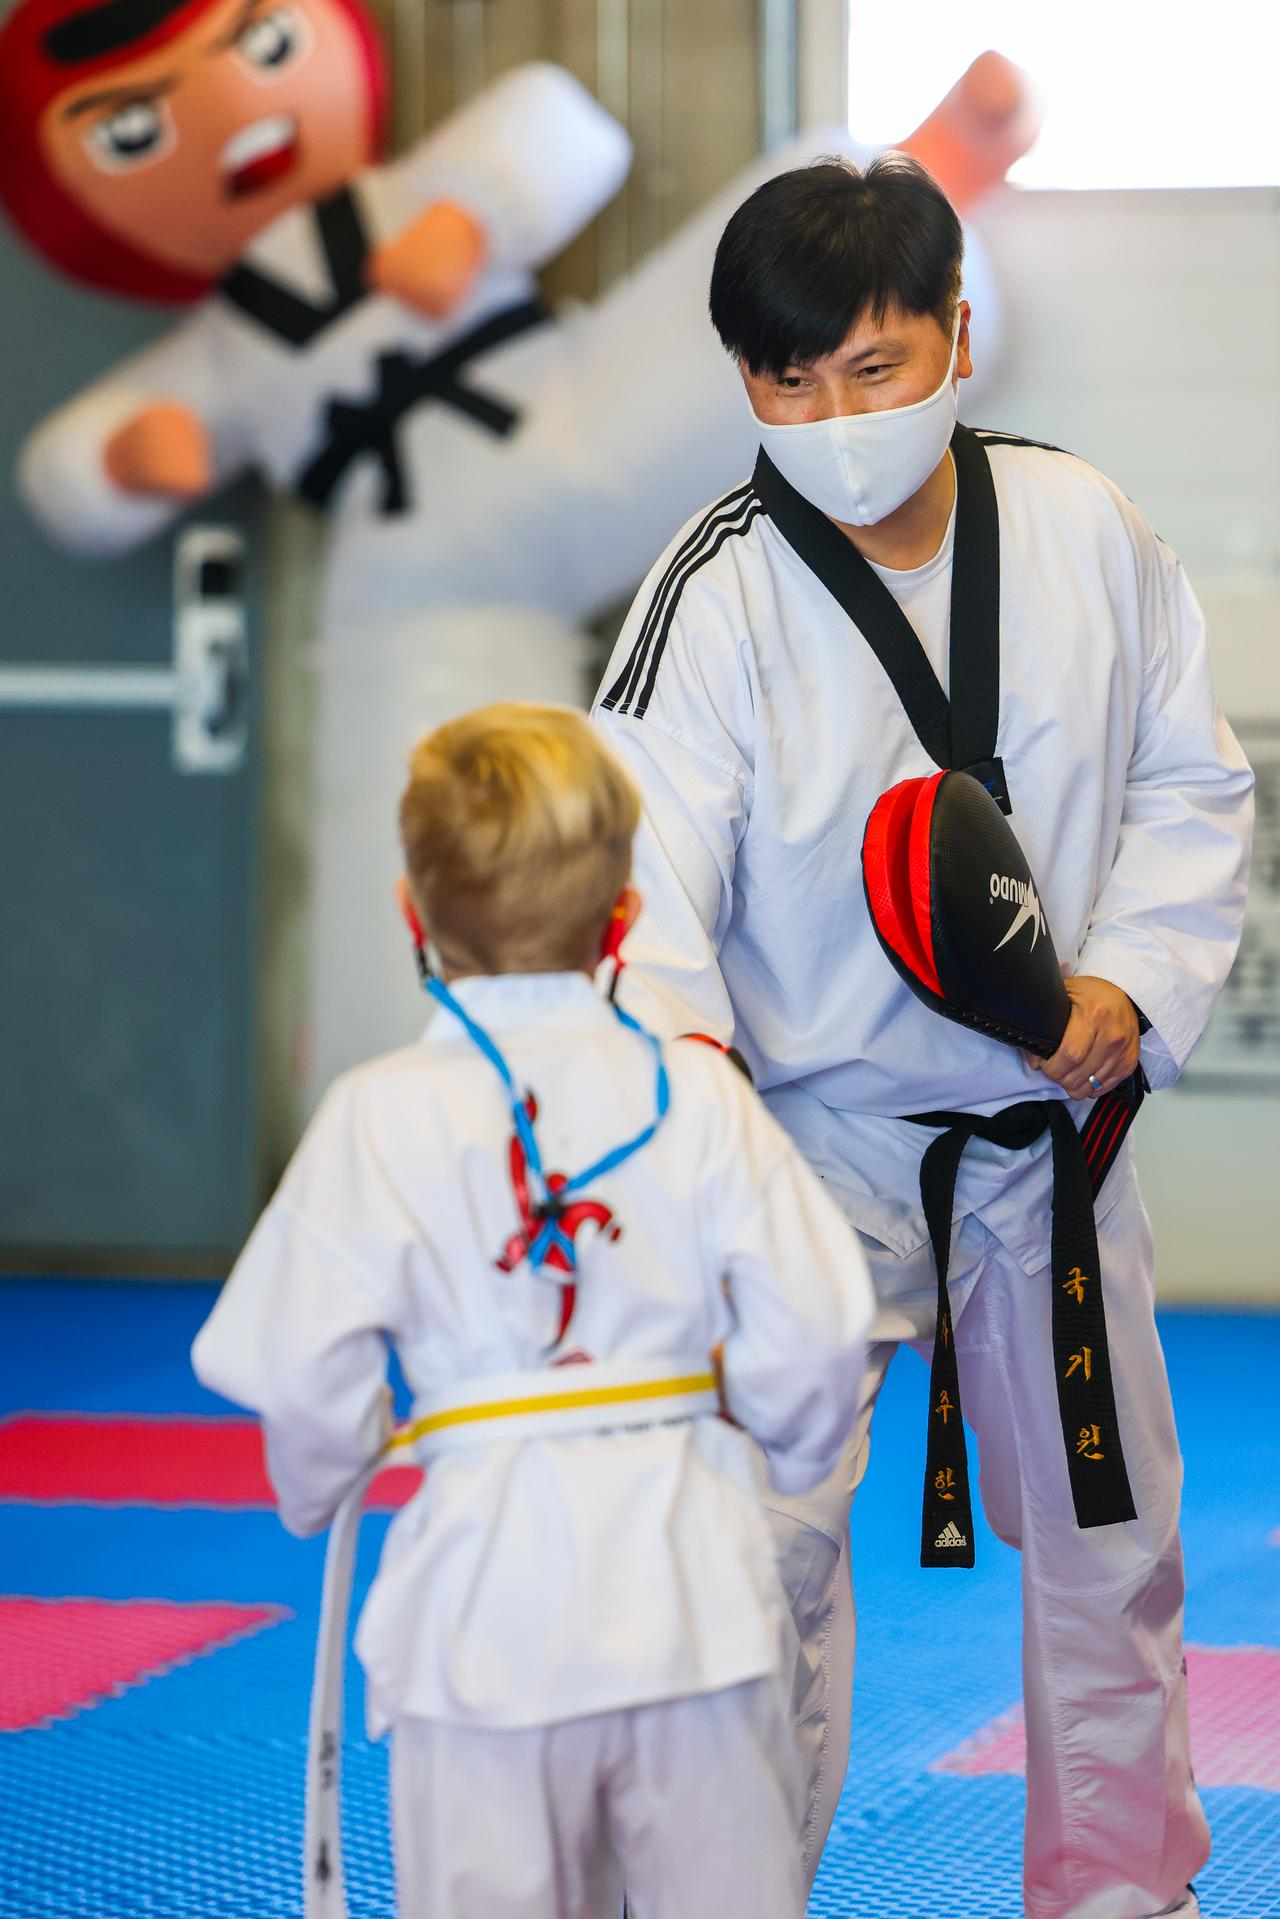 Master Joo-han Cha of Red Phoenix Tae Kwon Do teaching a youth martial arts